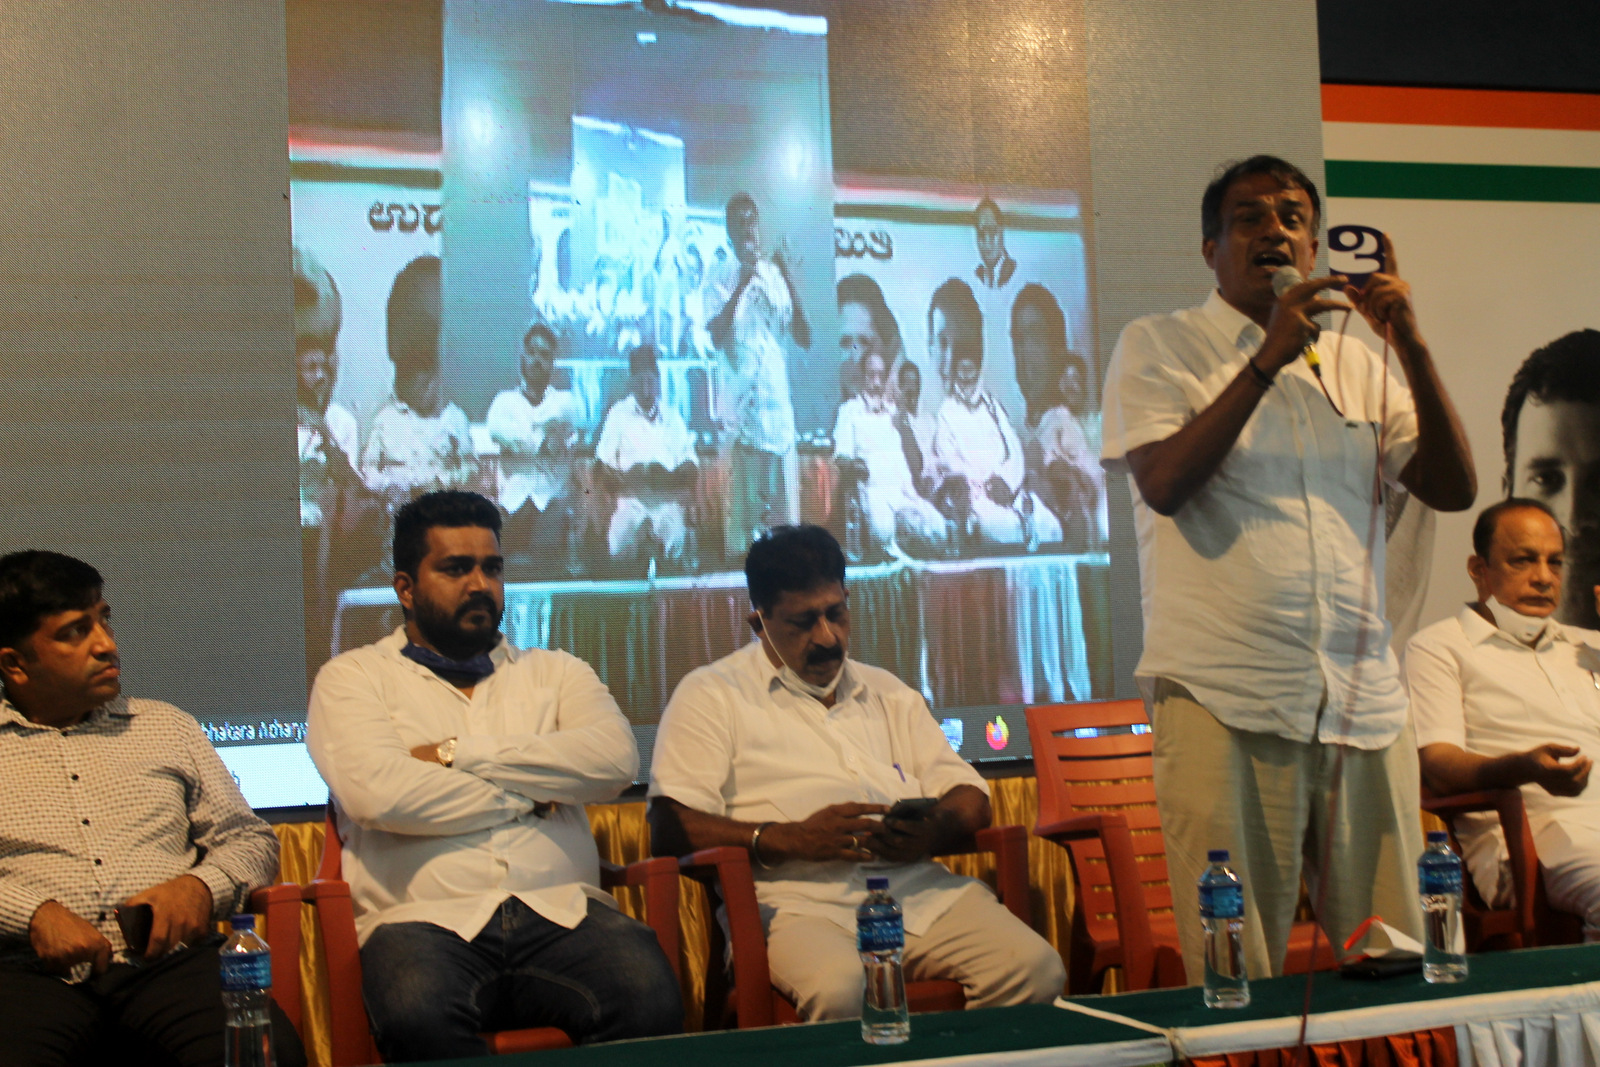 Munjunath Bhandary Vice President of KPCC inaugurates the Youth Congress Workshop